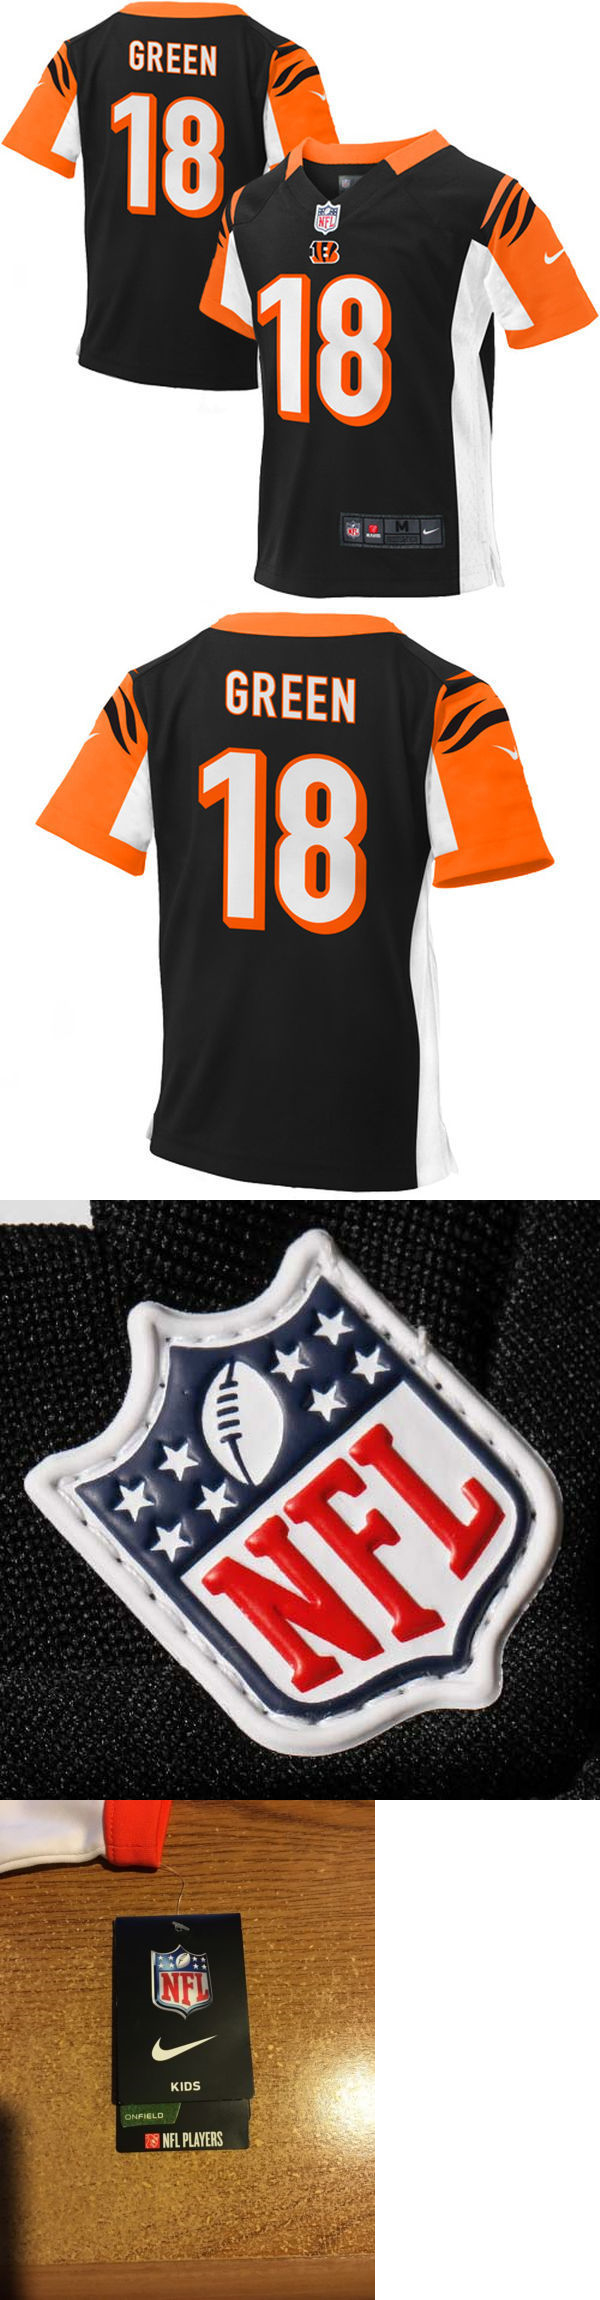 67a02731a45 ... promo code for youth 159111 nike aj green 18 cincinnati bengals nfl kids  onfield nfl players